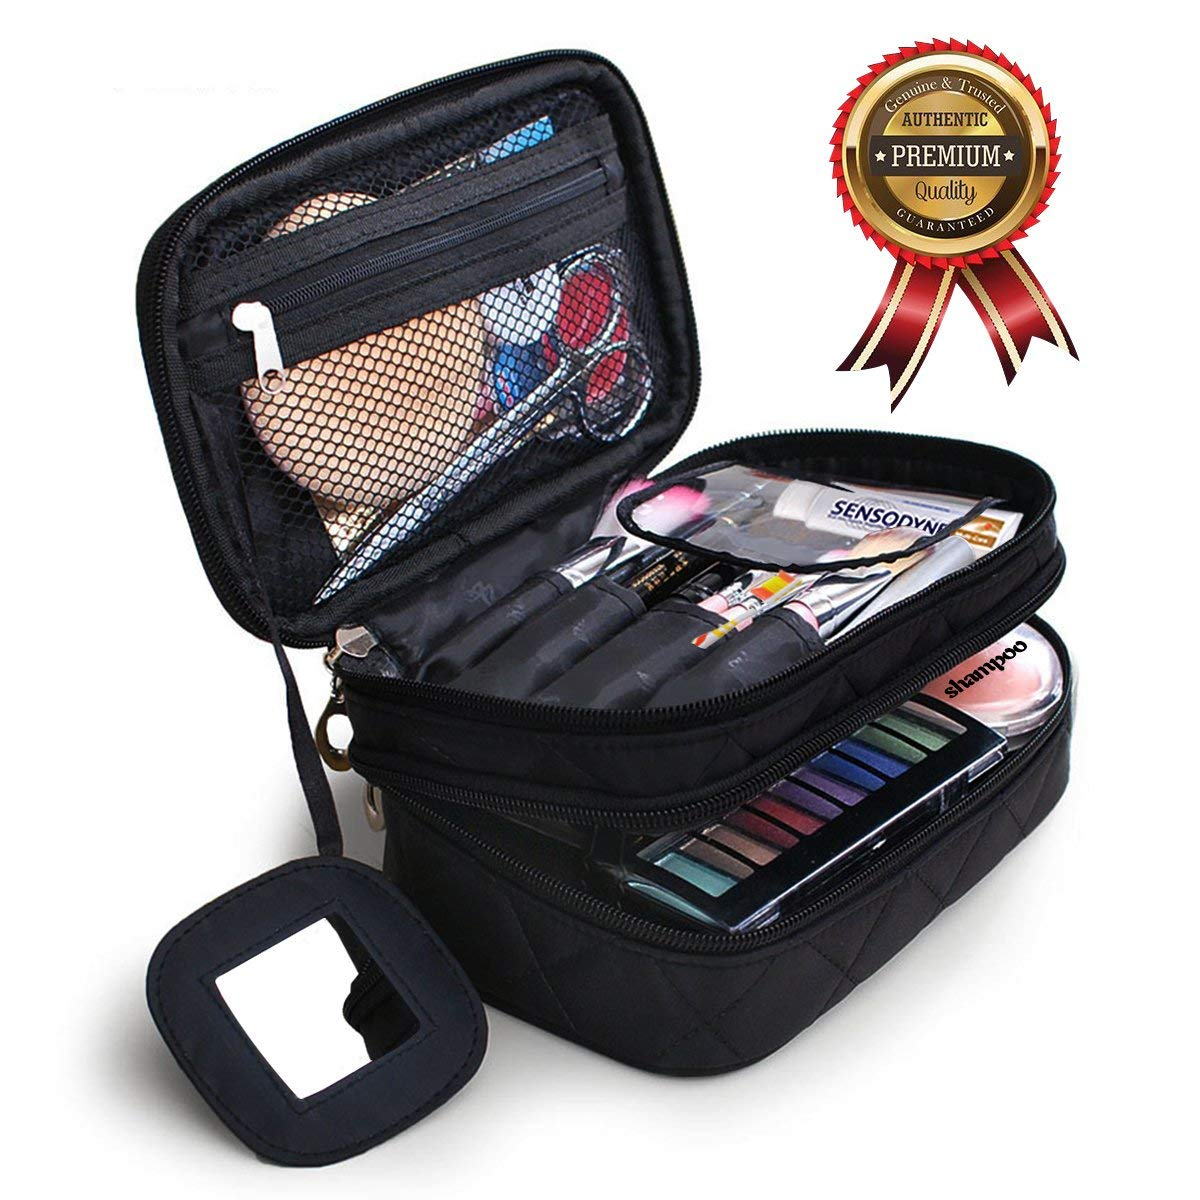 Get Quotations · Portable Makeup Bag Double Layer Toiletry Cosmetic Brush Organizer with Mirror for Women Black Multifunctional Travel